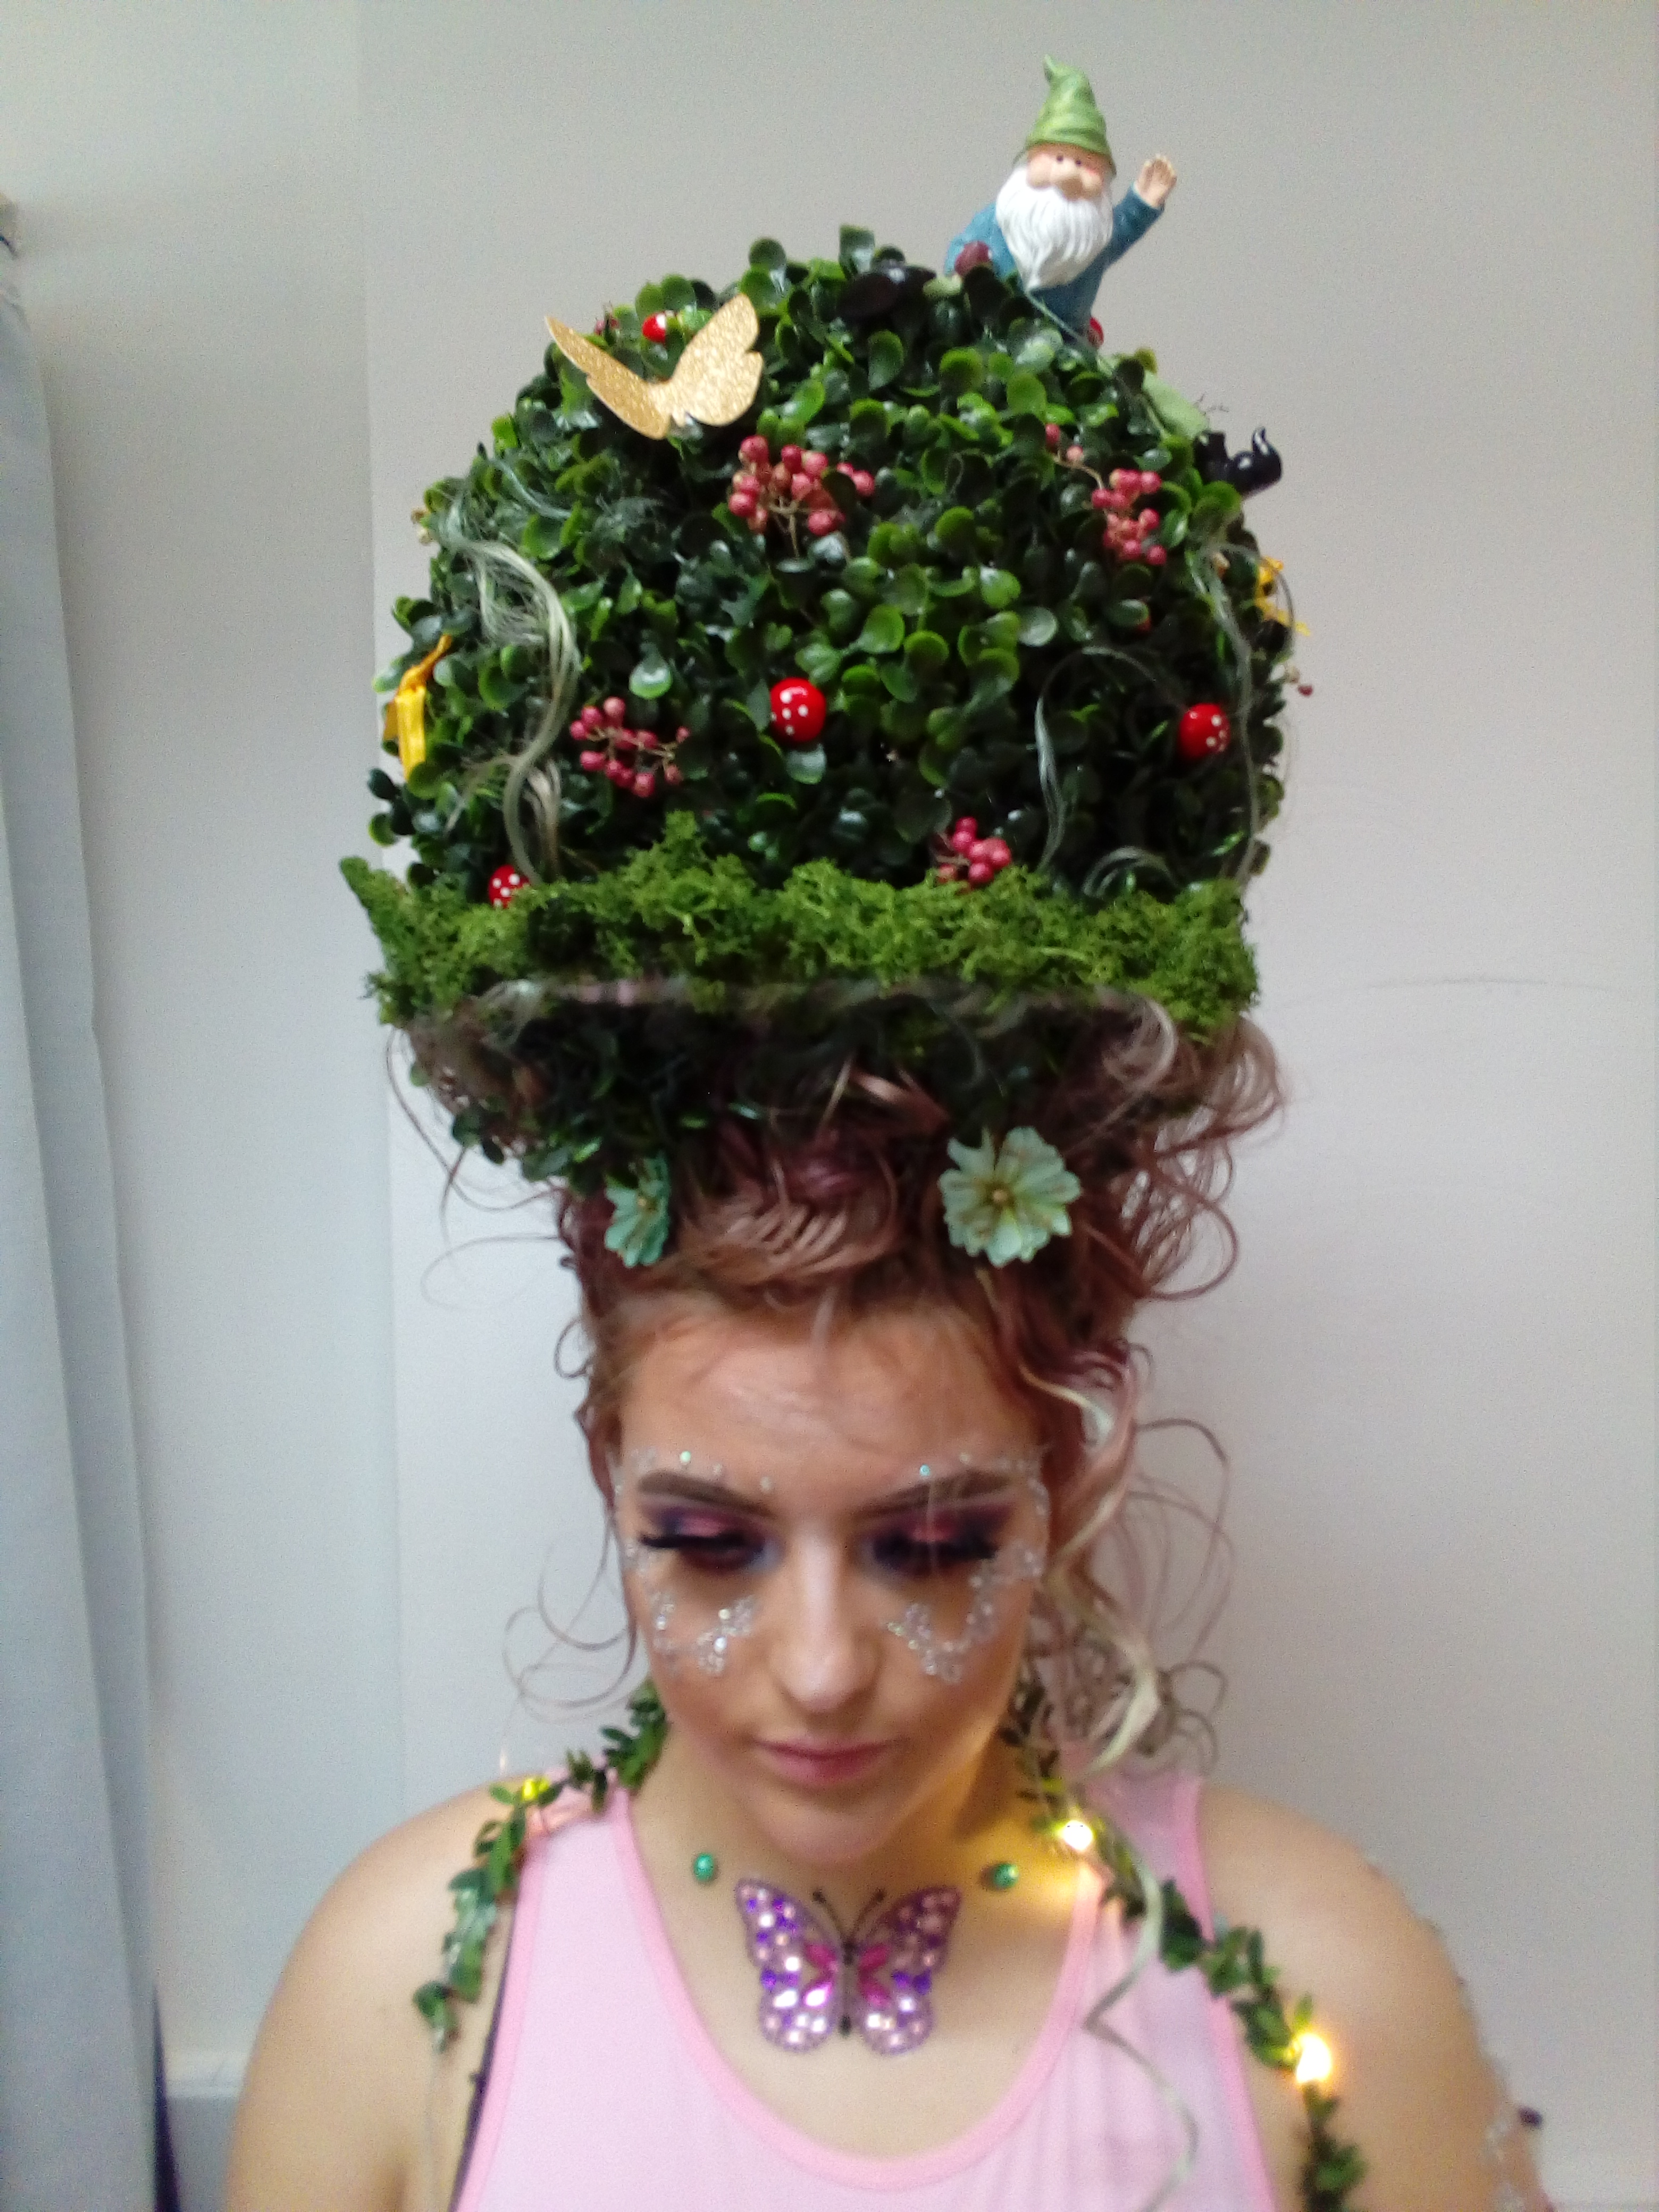 Creative Hairdressing - Out of this worl